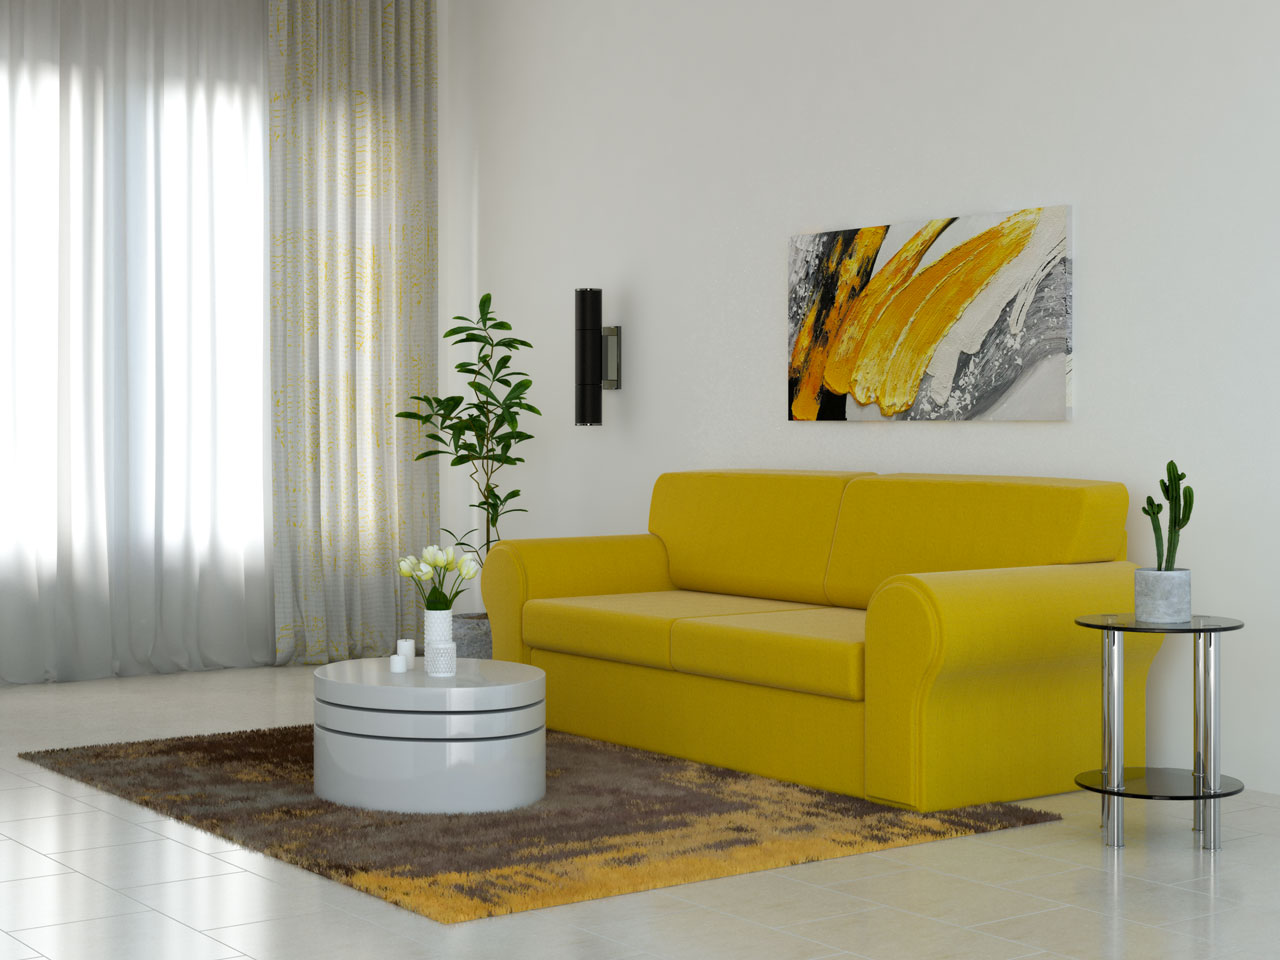 Brown and yellow rug with yellow couch